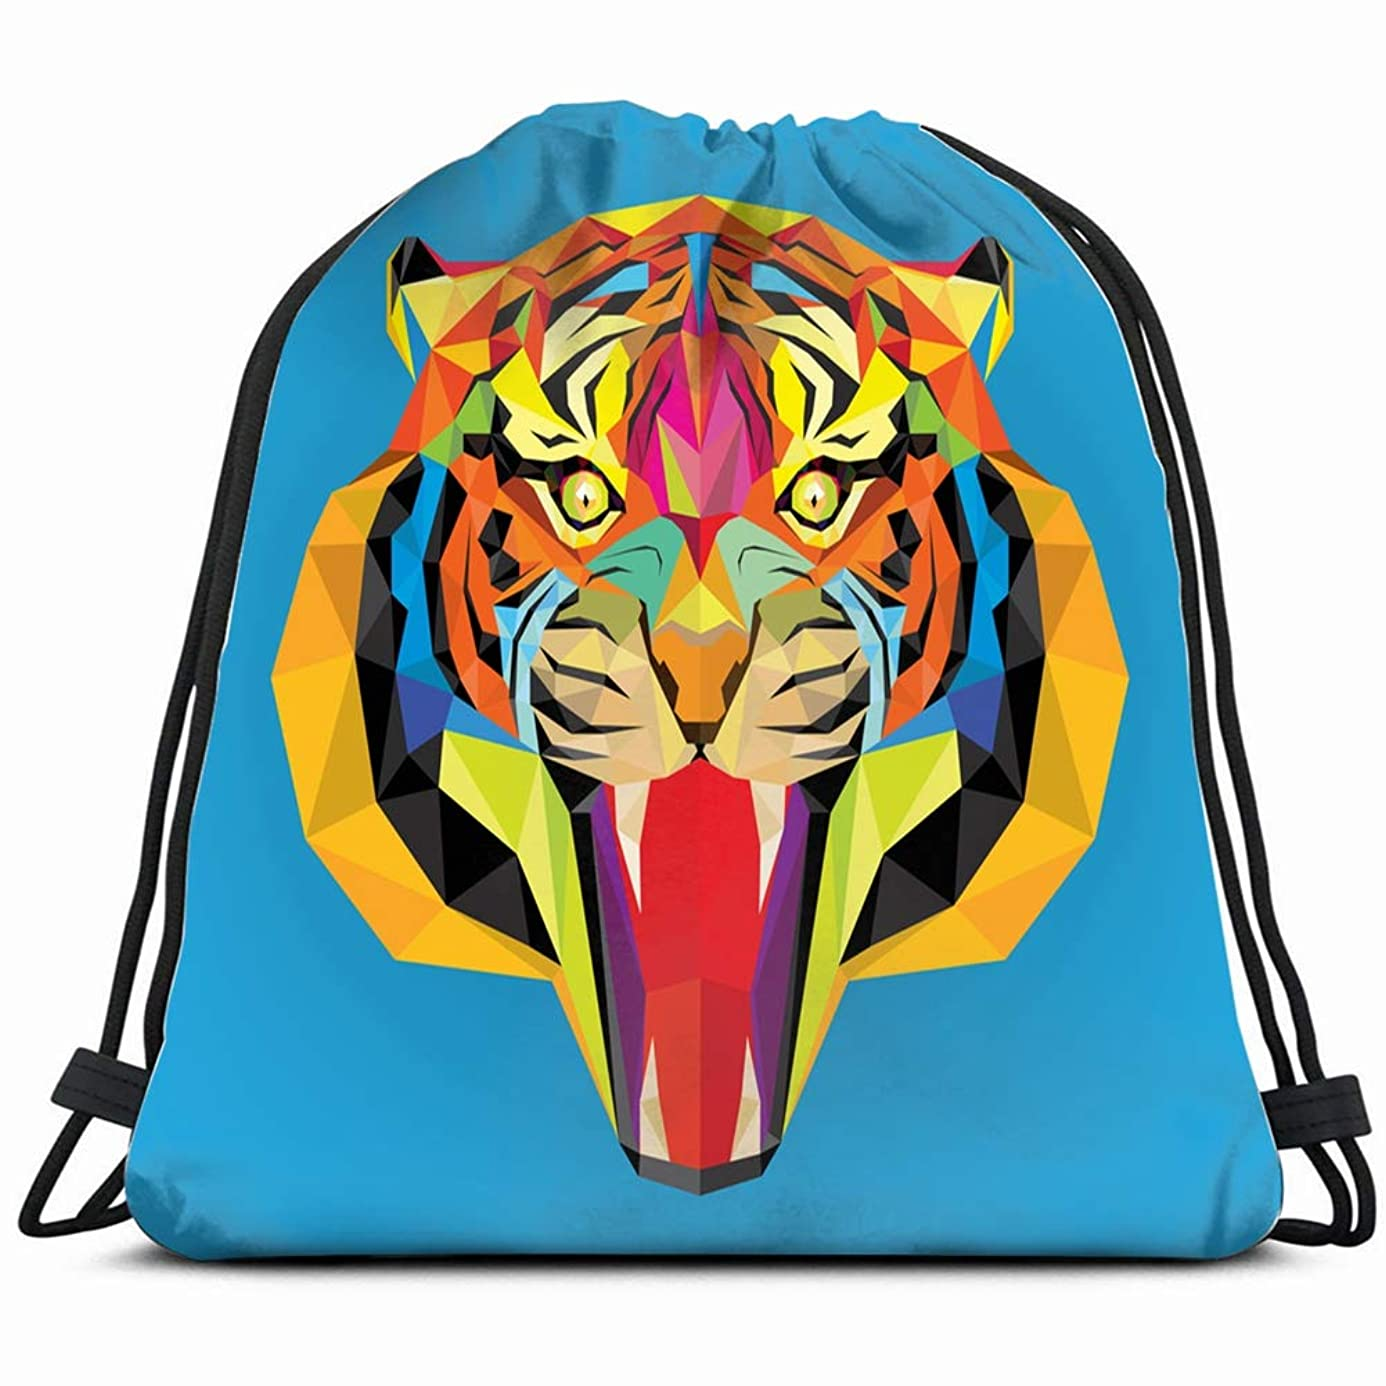 tiger head geometric style animals wildlife the arts Drawstring Backpack Gym Sack Lightweight Bag Water Resistant Gym Backpack for Women&Men for Sports,Travelling,Hiking,Camping,Shopping Yoga